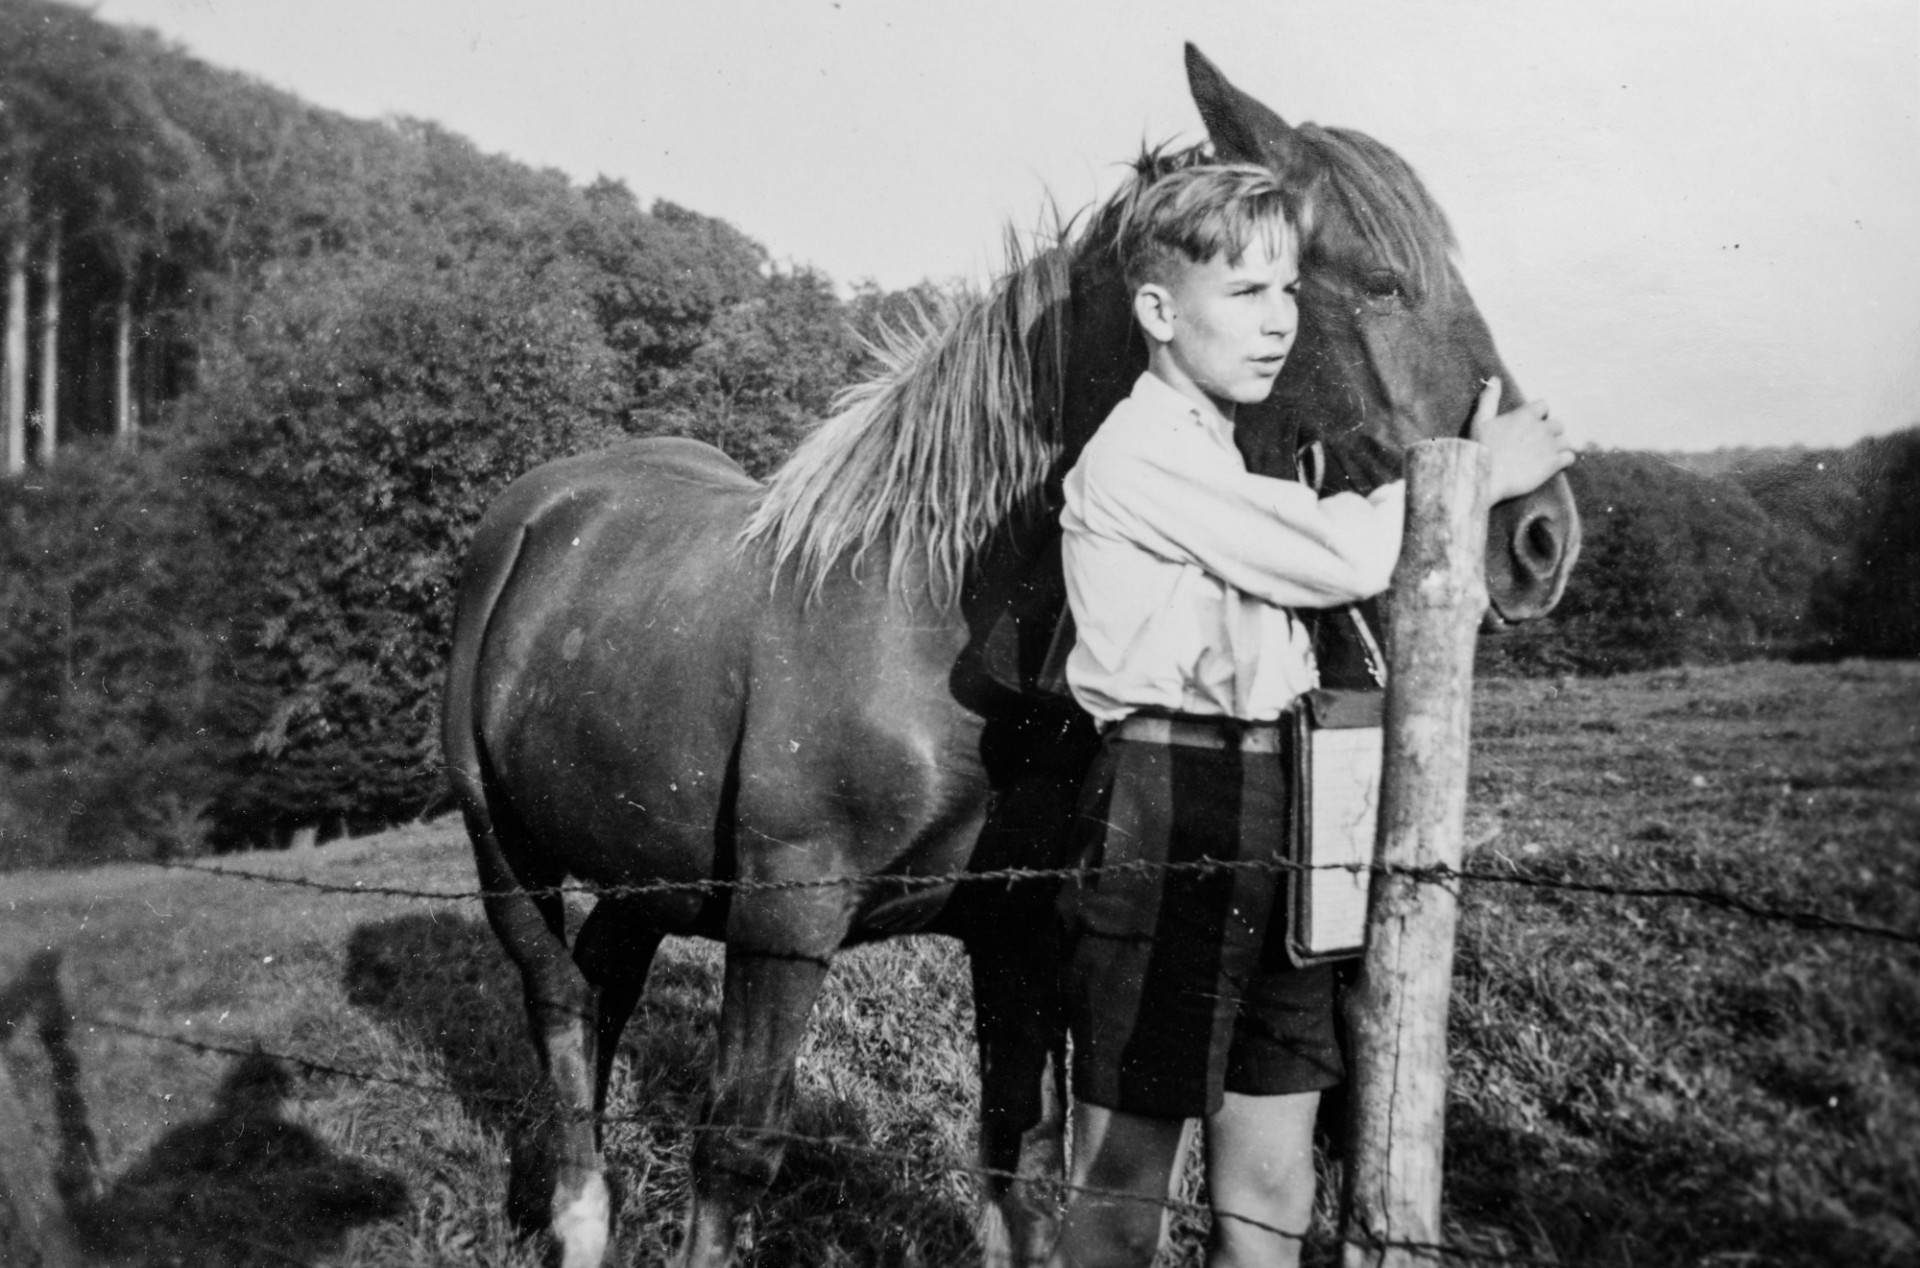 Boy with horse - 1950 in Germany